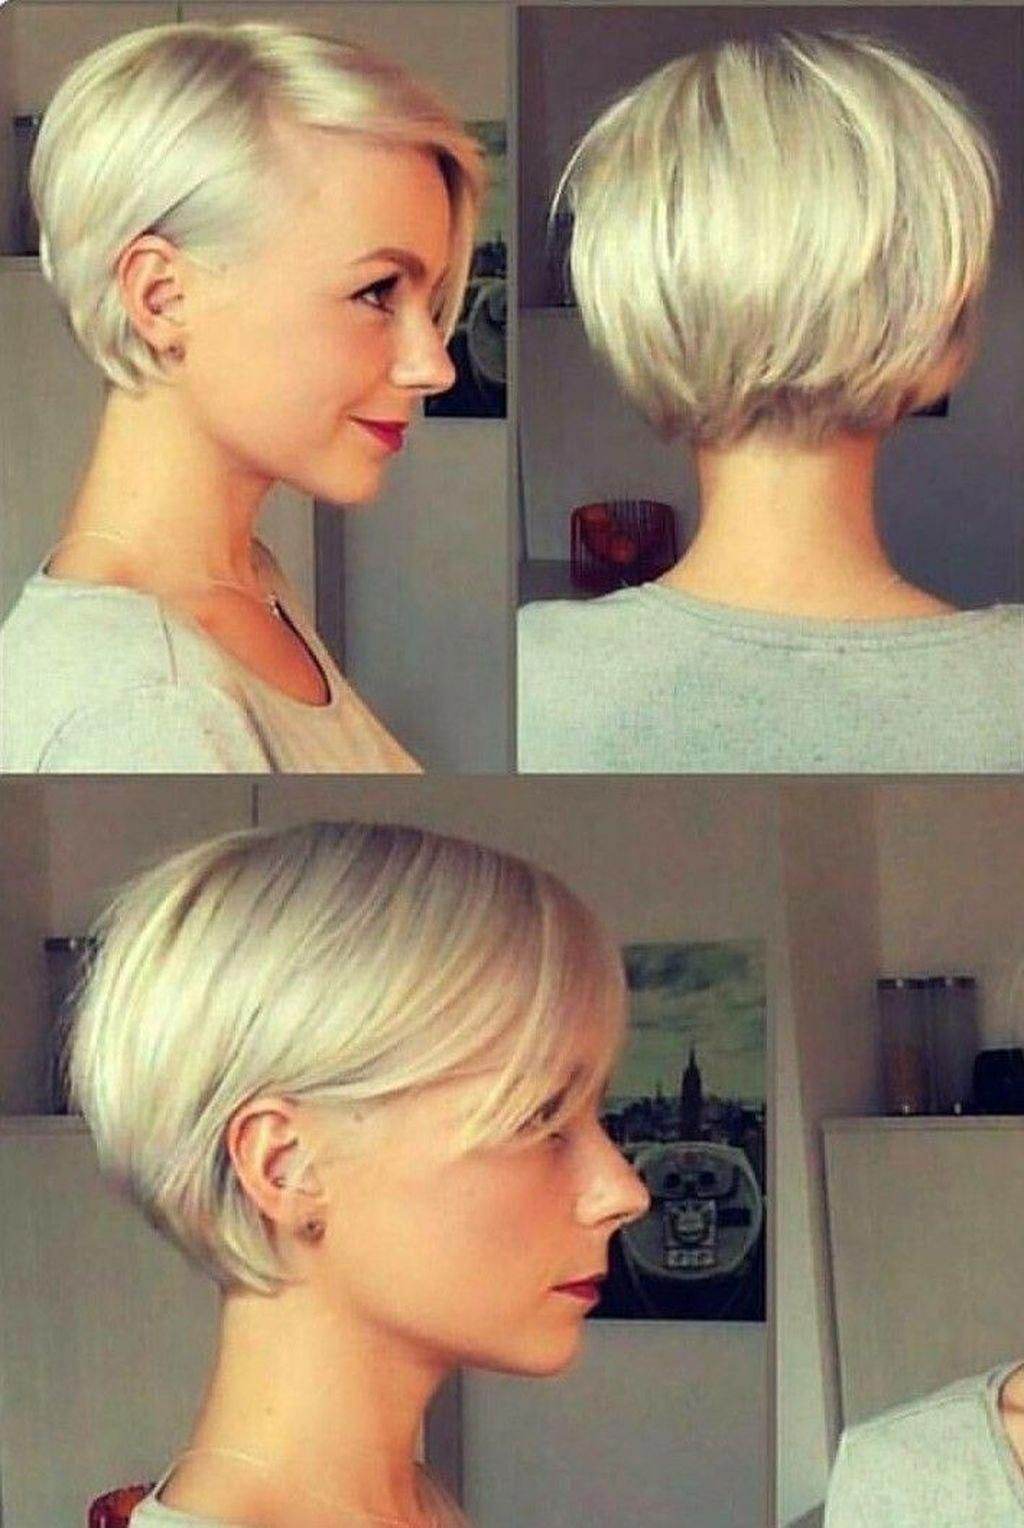 Nice 30 Newest Short Hair Style Ideas For Women Bobhair In 2020 Bobs For Thin Hair Hair Styles Short Hair Styles